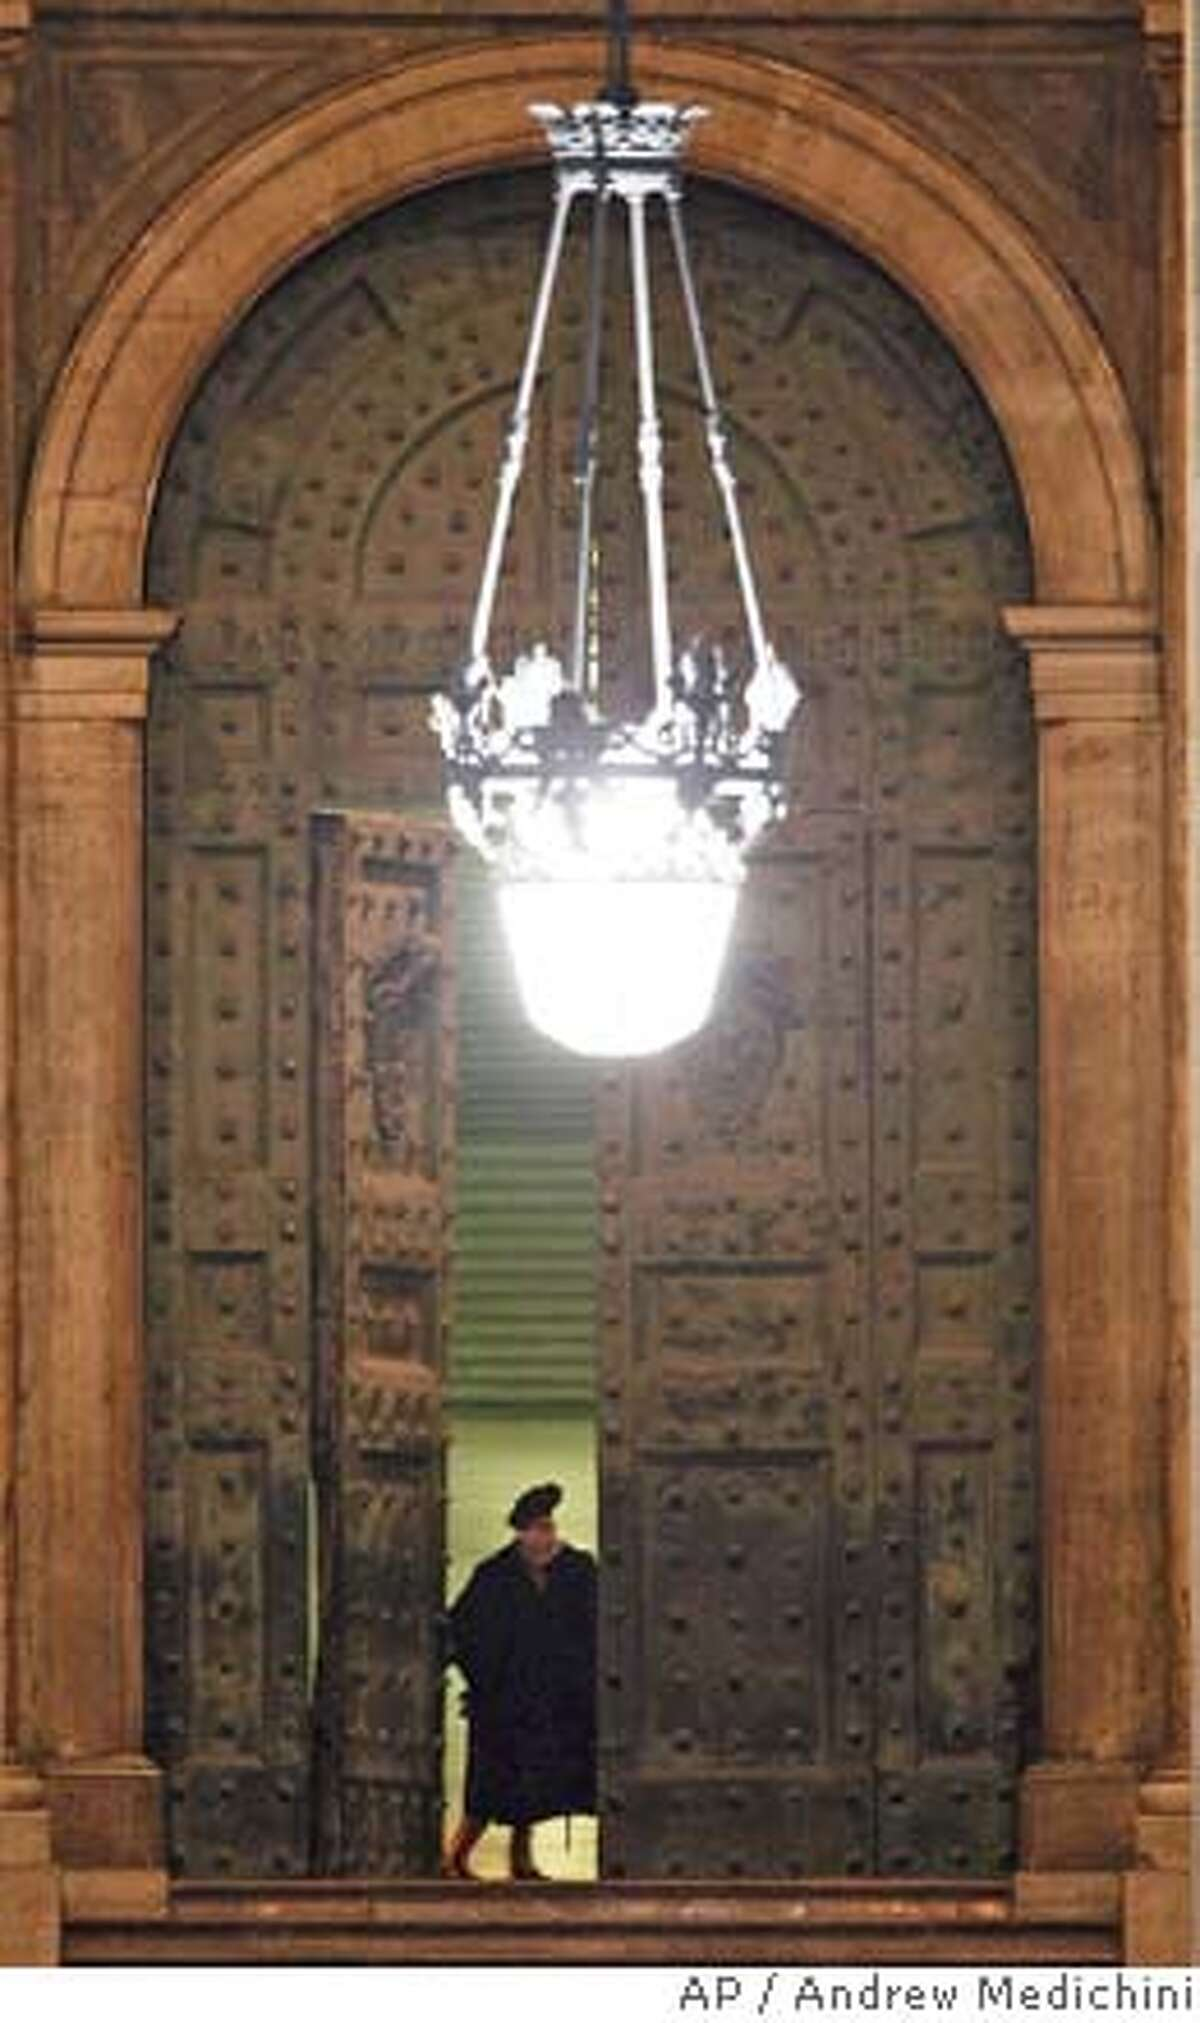 A Swiss guard closes the Bronze Door in St. Peter's Square at the Vatican, Saturday April 2, 2005, where the pontiff's life appeared to be slipping away showing the first signs of losing consciousness. (AP Photo/Andrew Medichini)